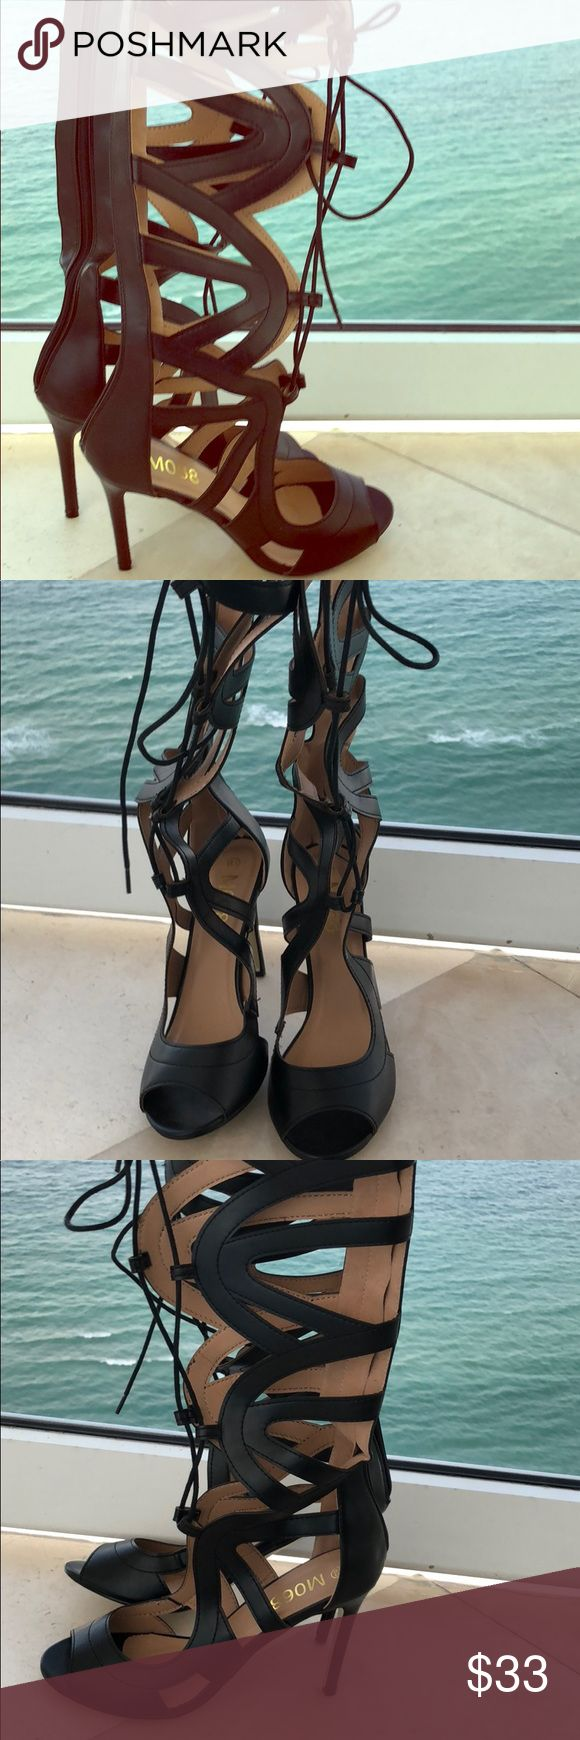 Tall Black Gladiator Lace Up Heels Tall Black Gladiator Lace Up Heels Goes up the calves to give a sexy look!  Brand NEW, Never been worn  Size 8.5  Measurements available upon request Shoes Heels